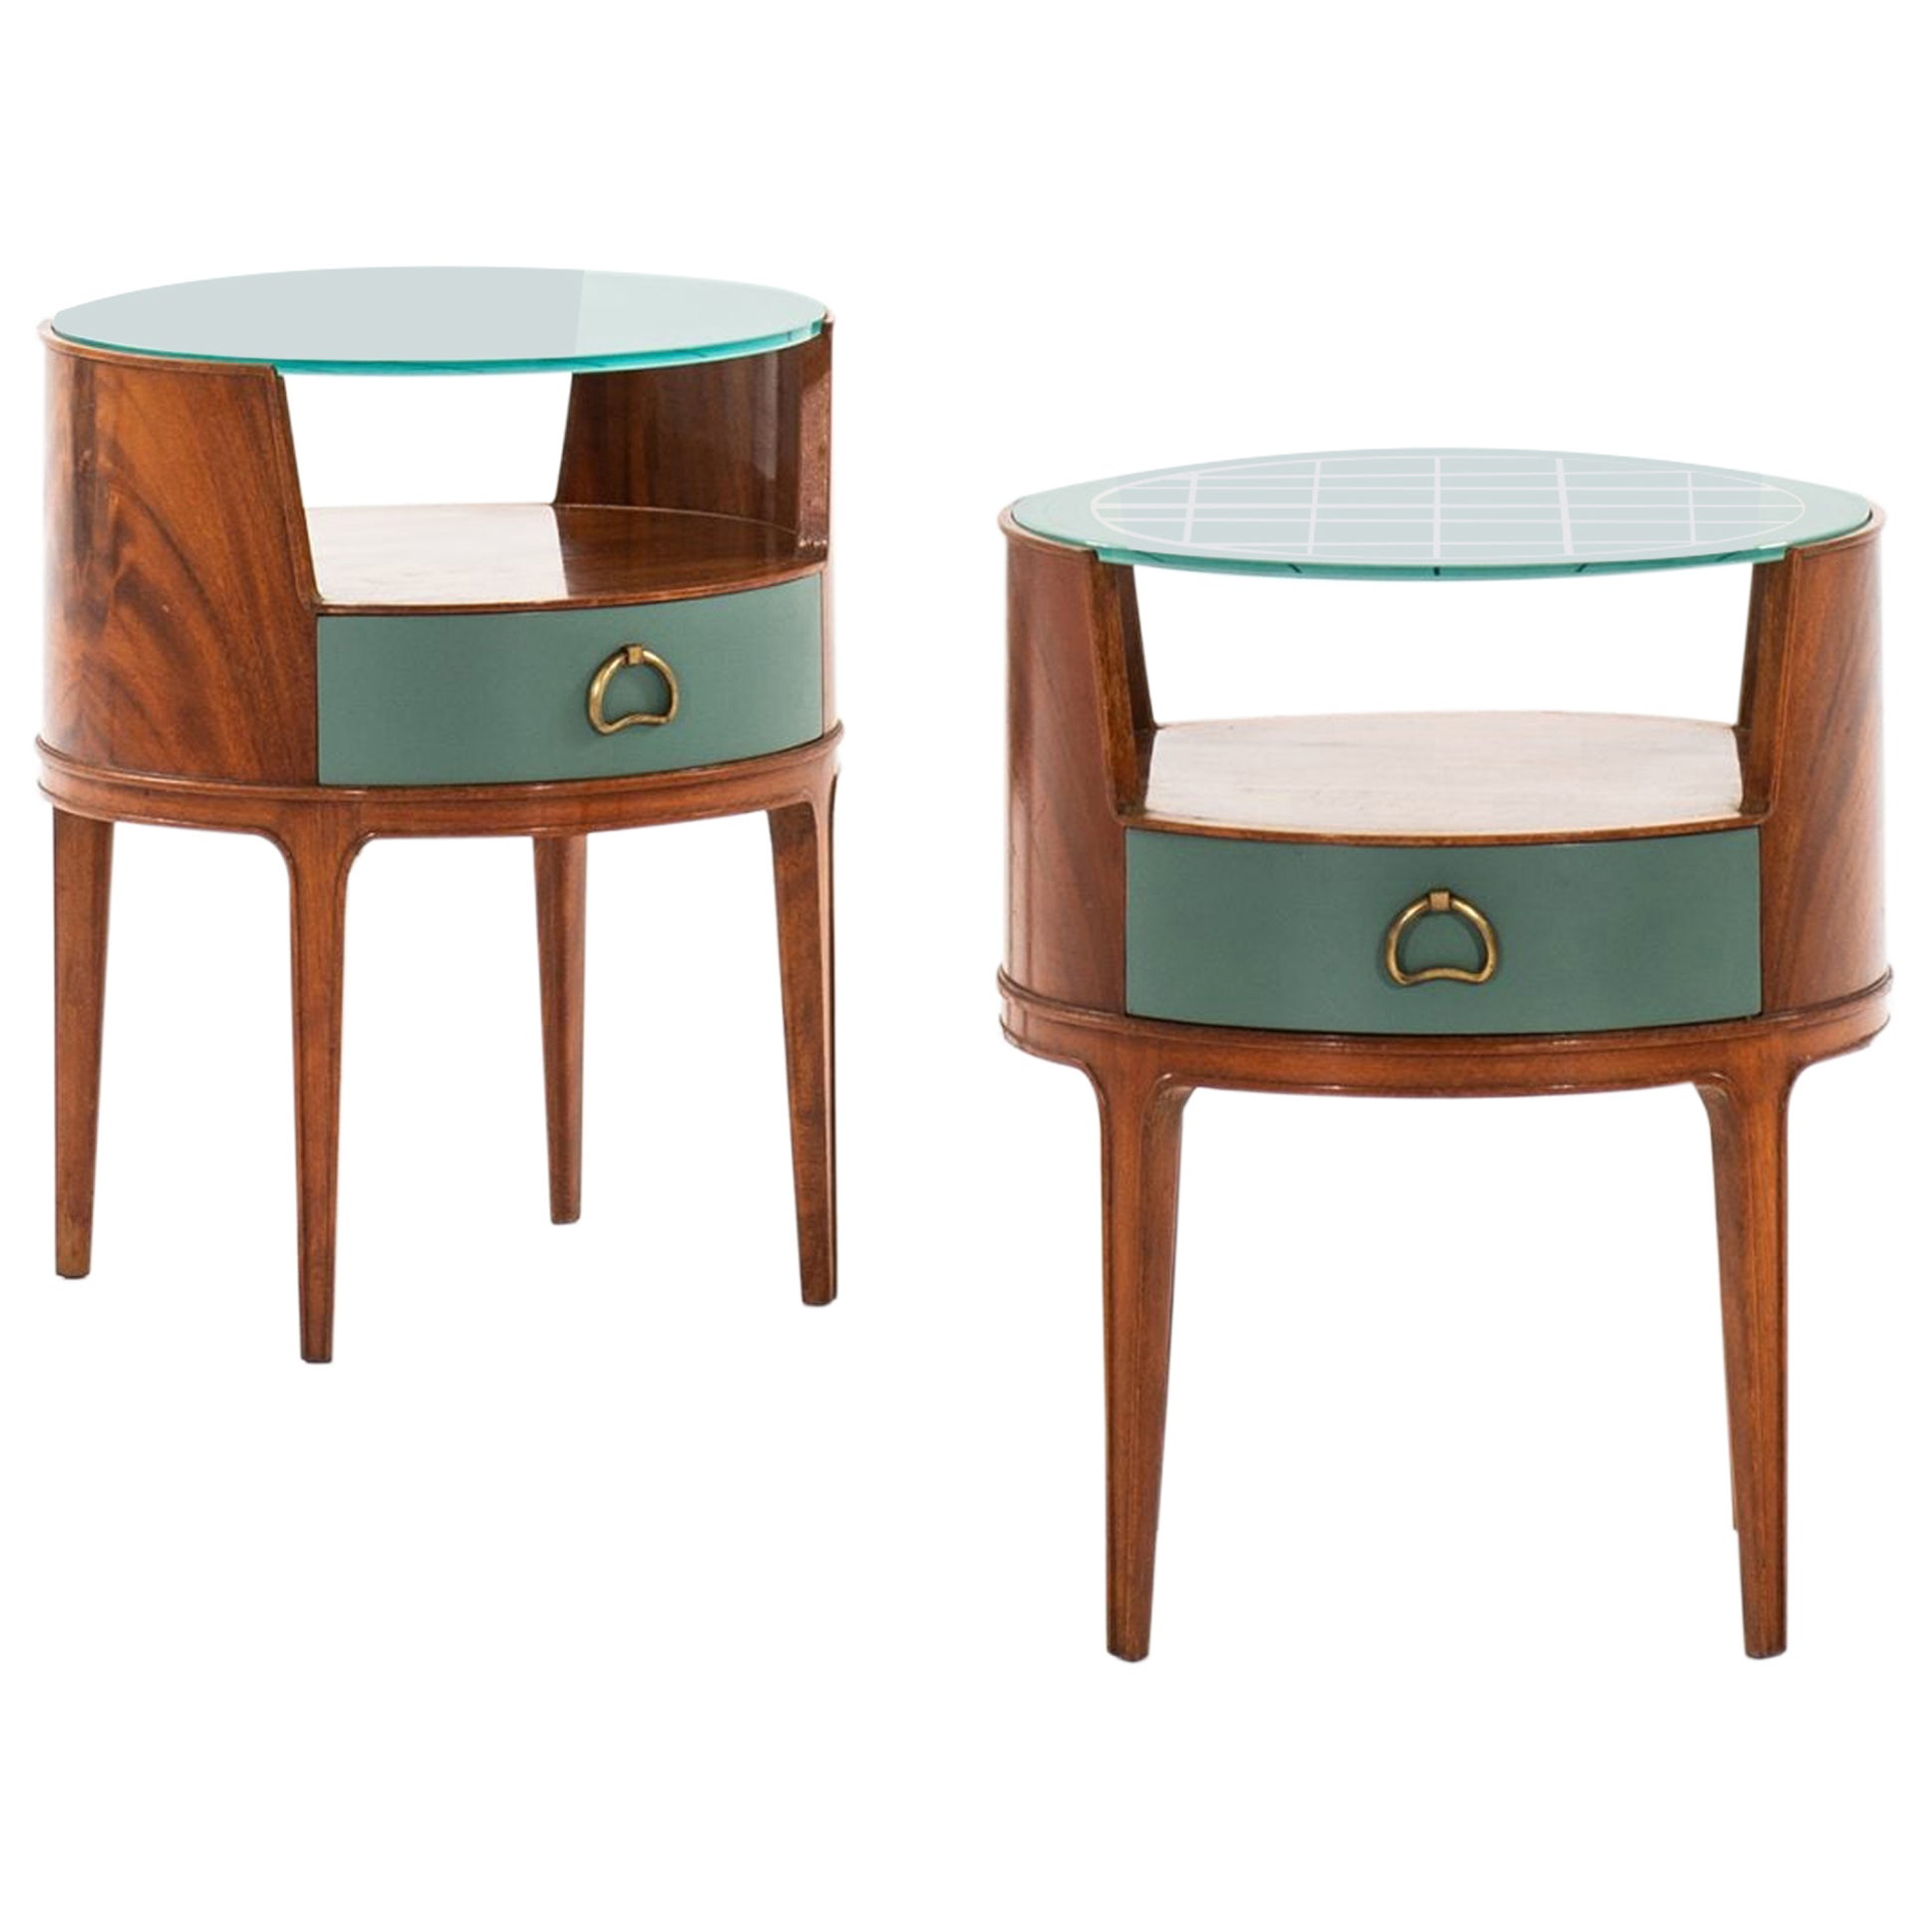 Axel Larsson Bedside Tables or Side Tables Produced by Bodafors in Sweden